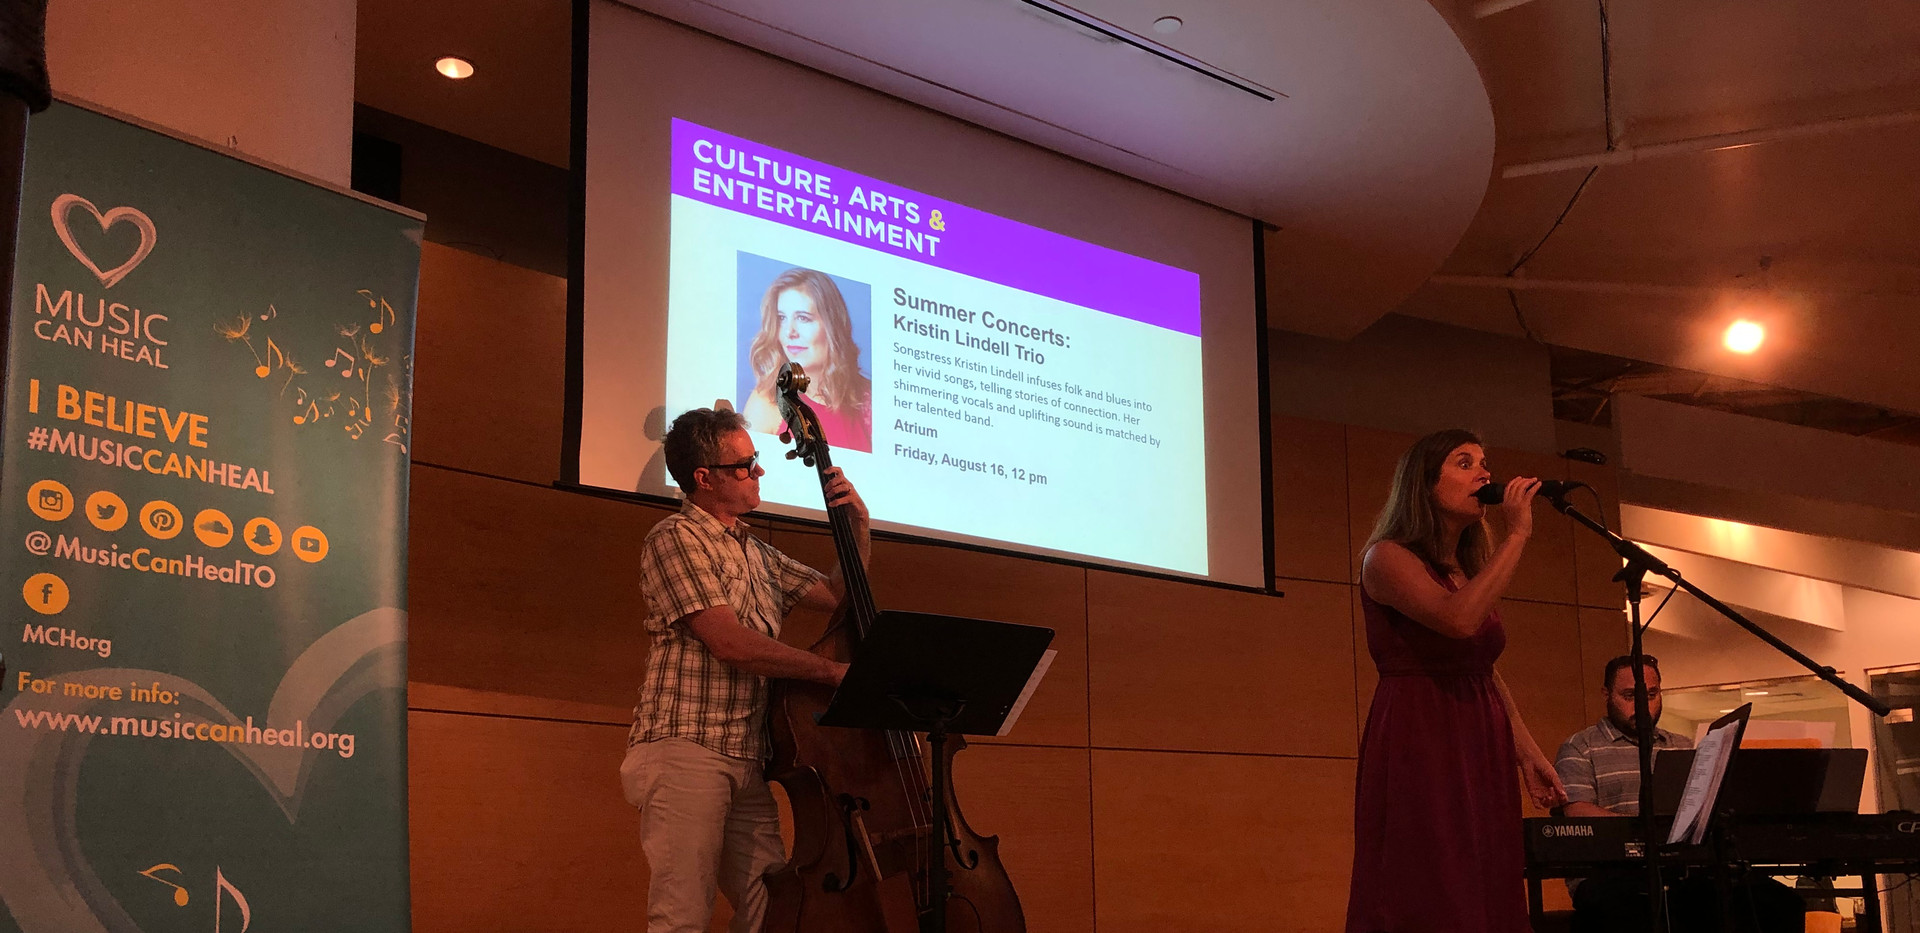 Kristin Lindell Trio at Toronto Reference Library 2019